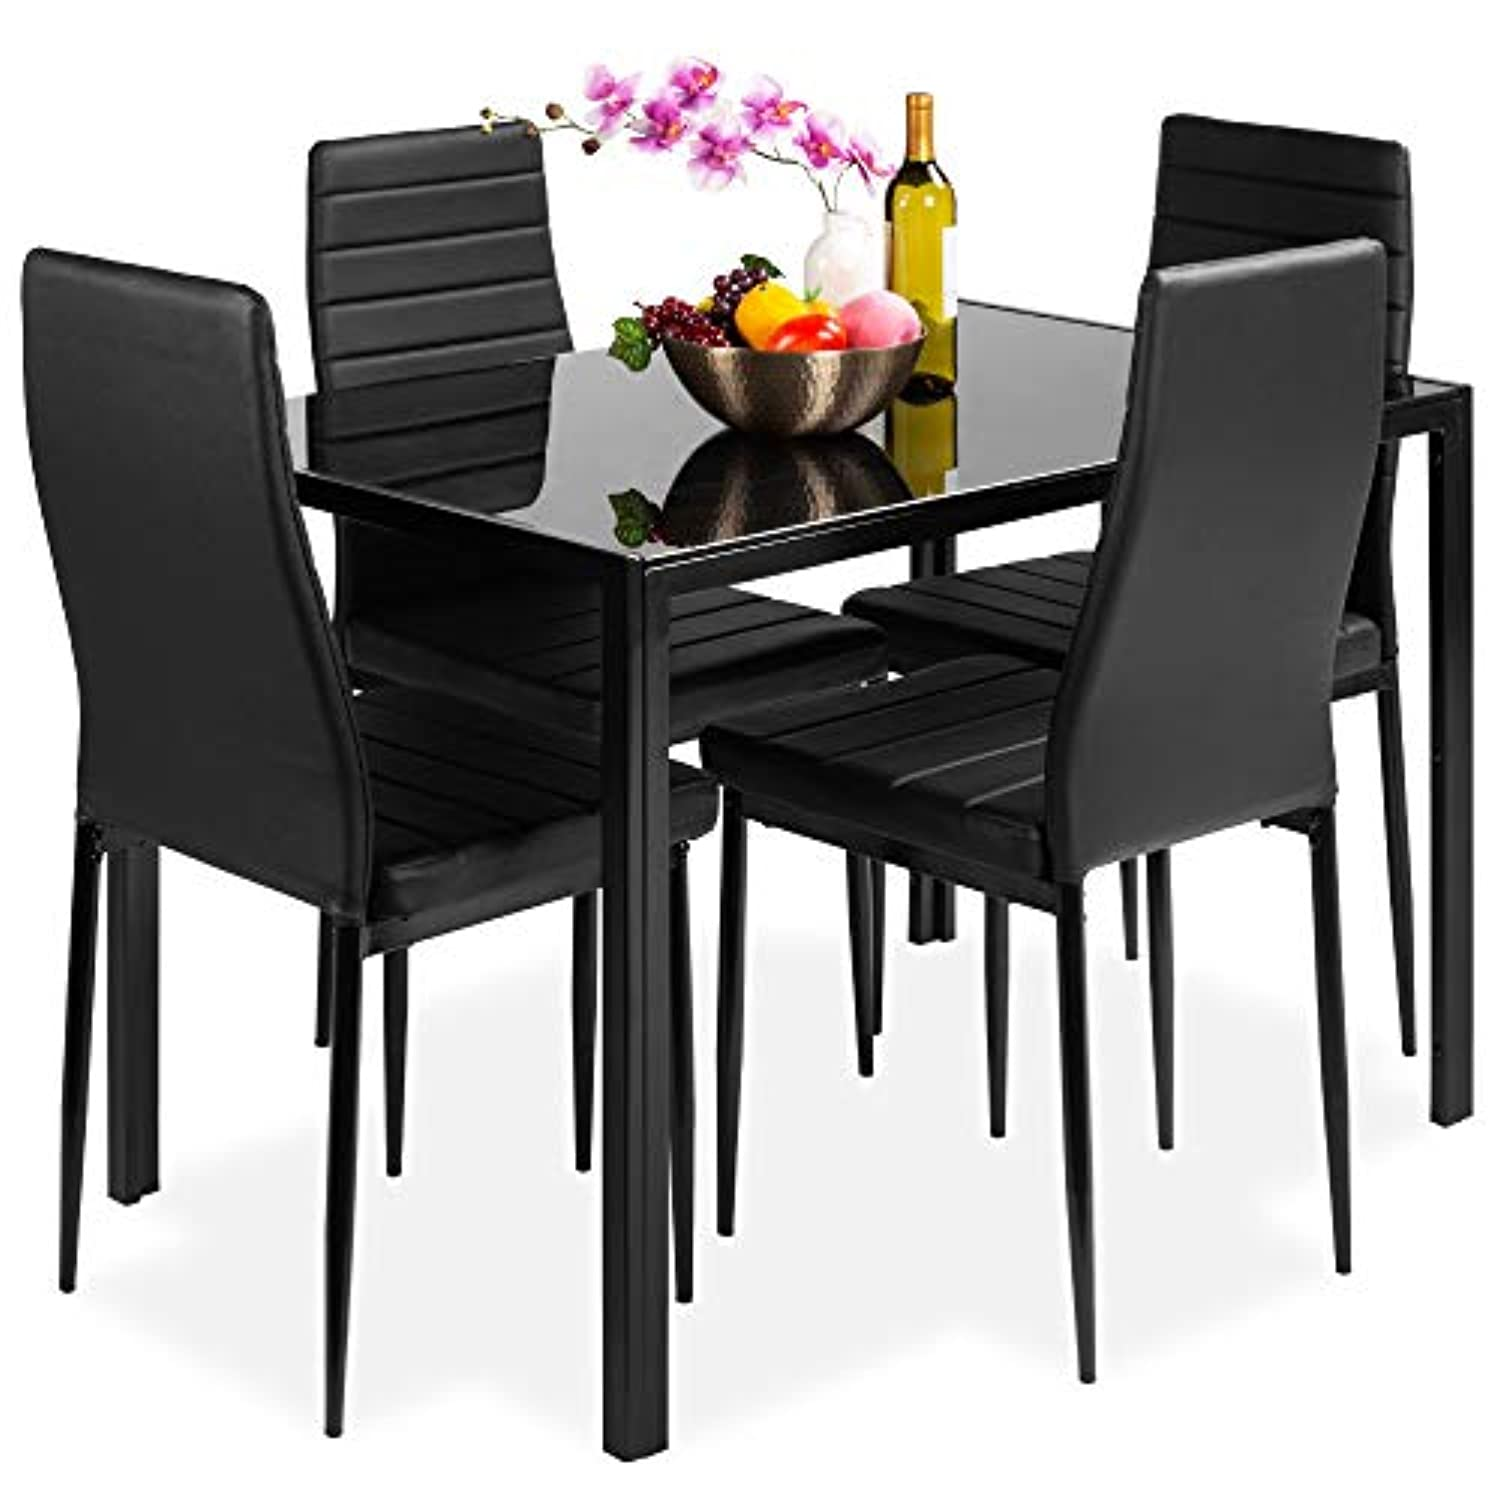 Classier: Buy Best Choice Products Best Choice Products 5-Piece Kitchen Dining Table Set w/Glass Tabletop, 4 Faux Leather Chairs - Black